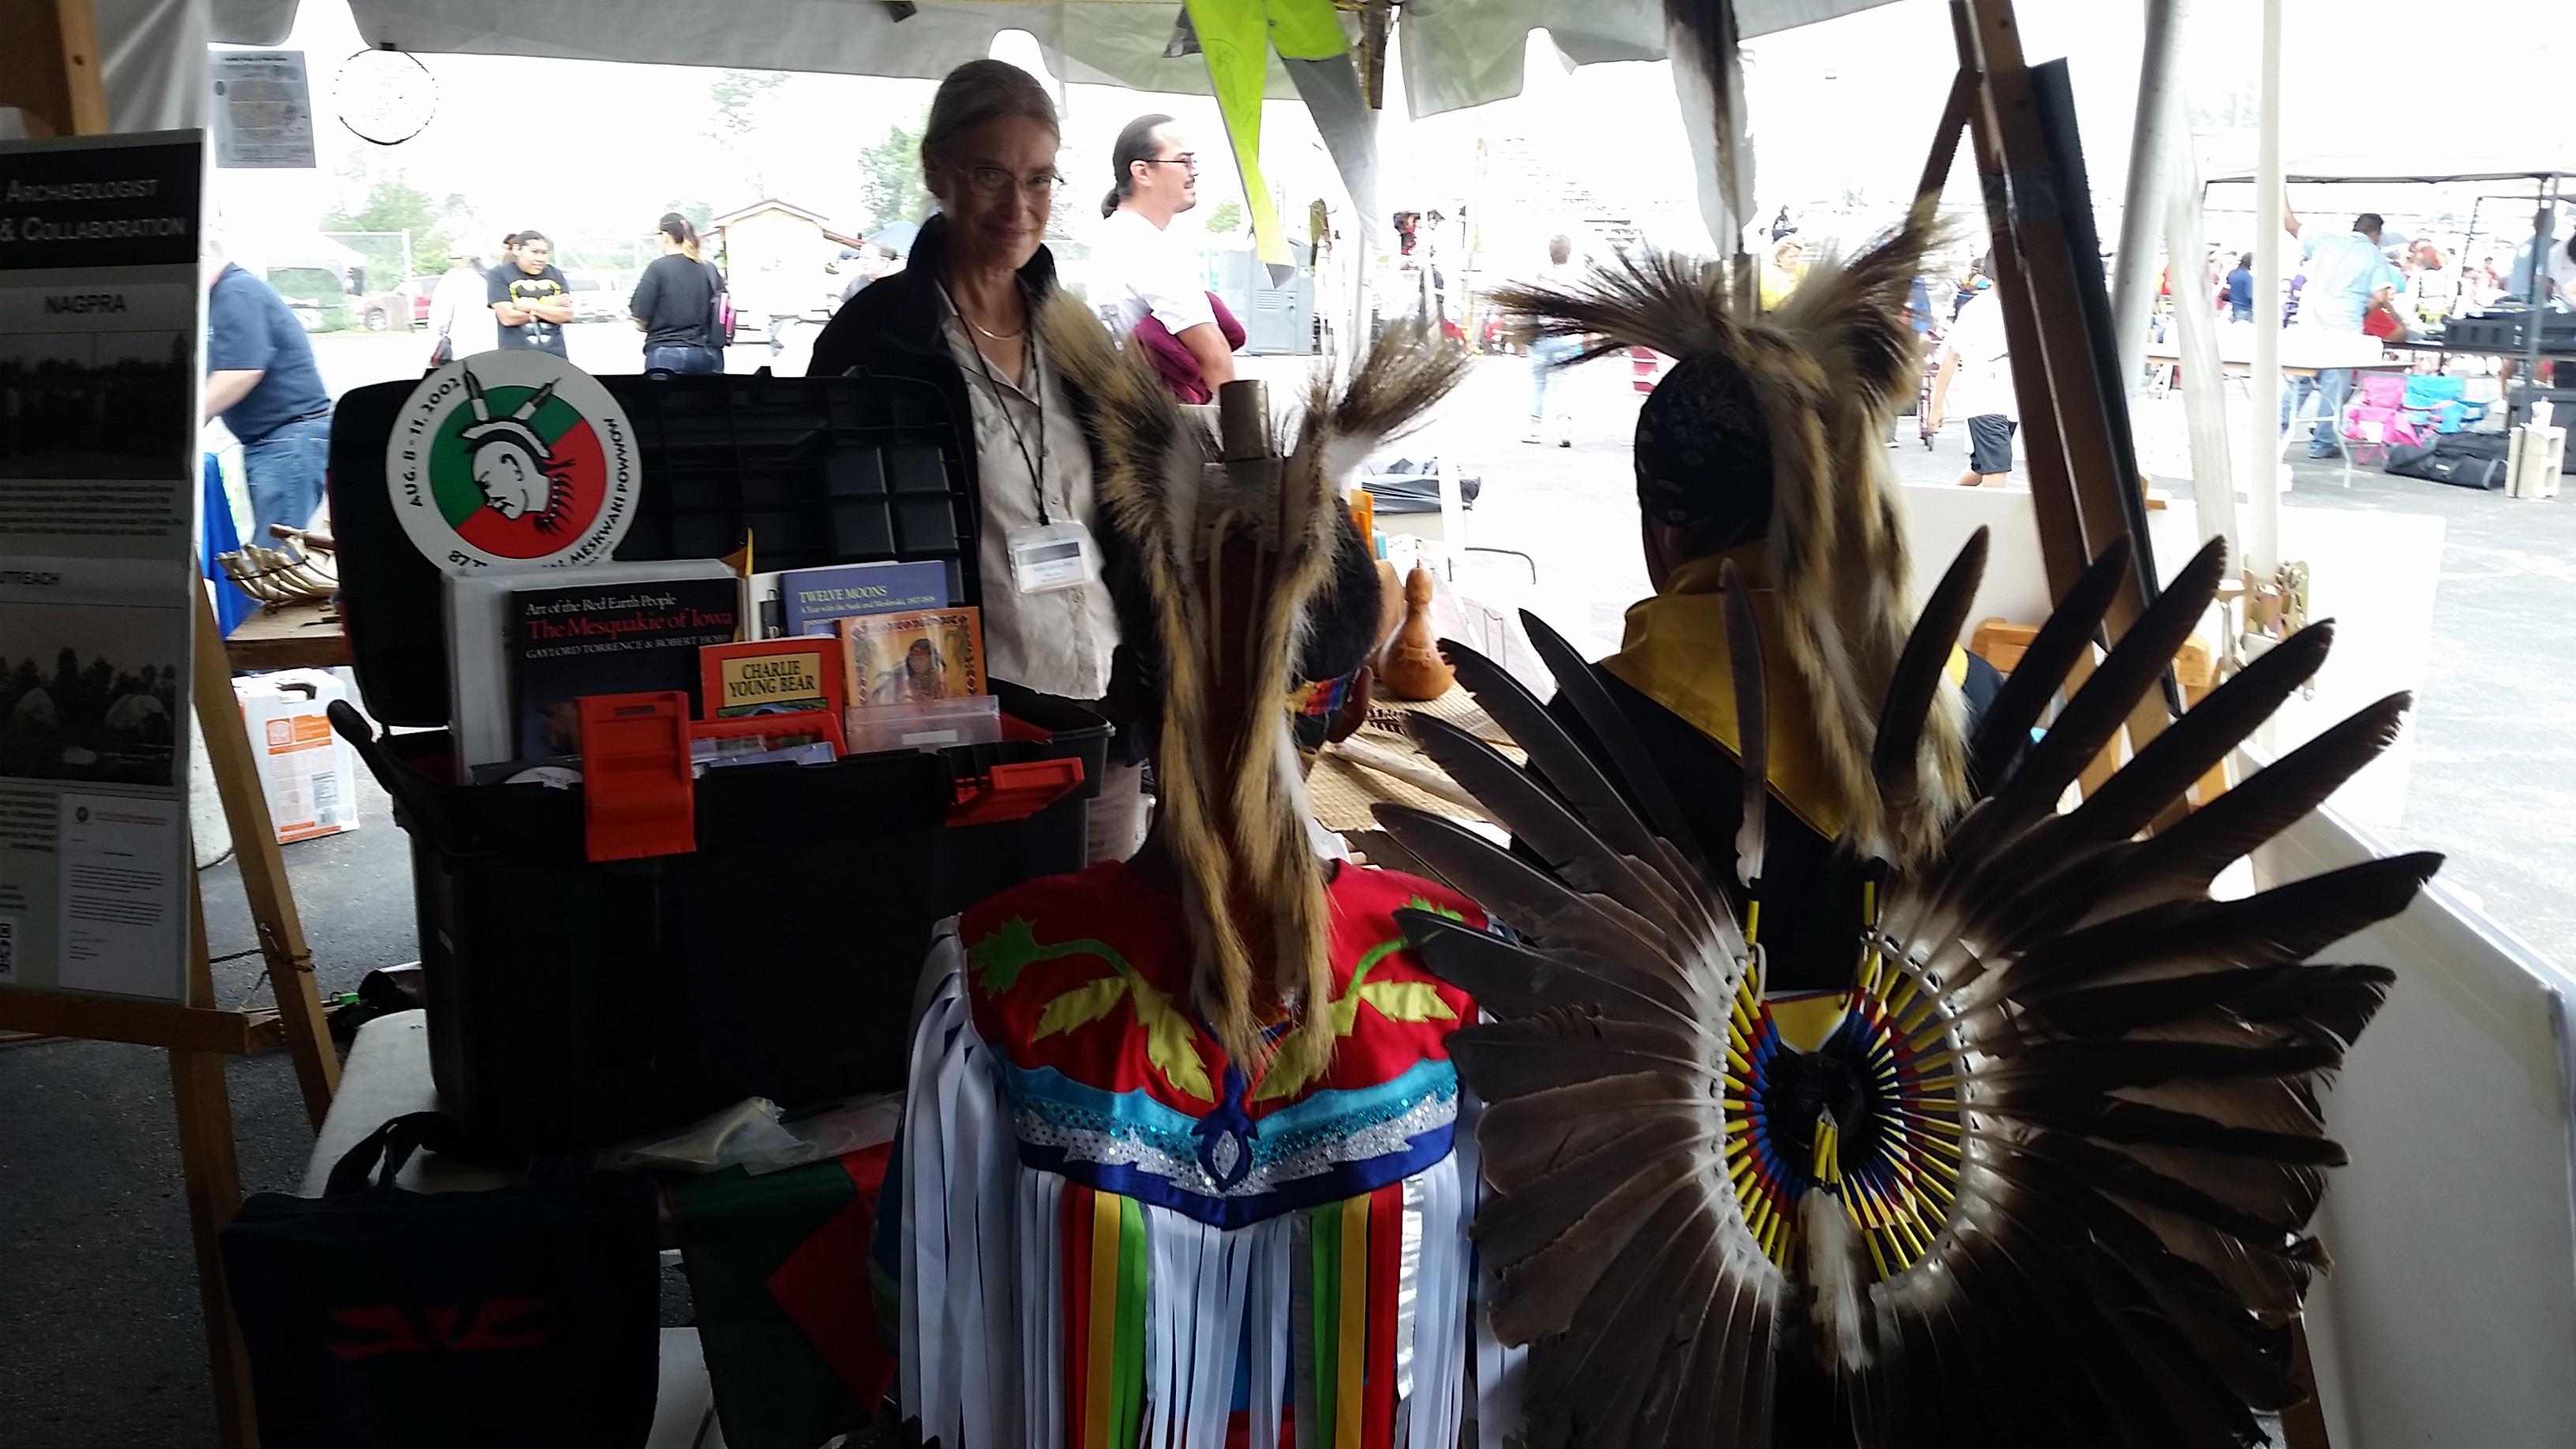 Exhibit booth at Meskwaki Powwow